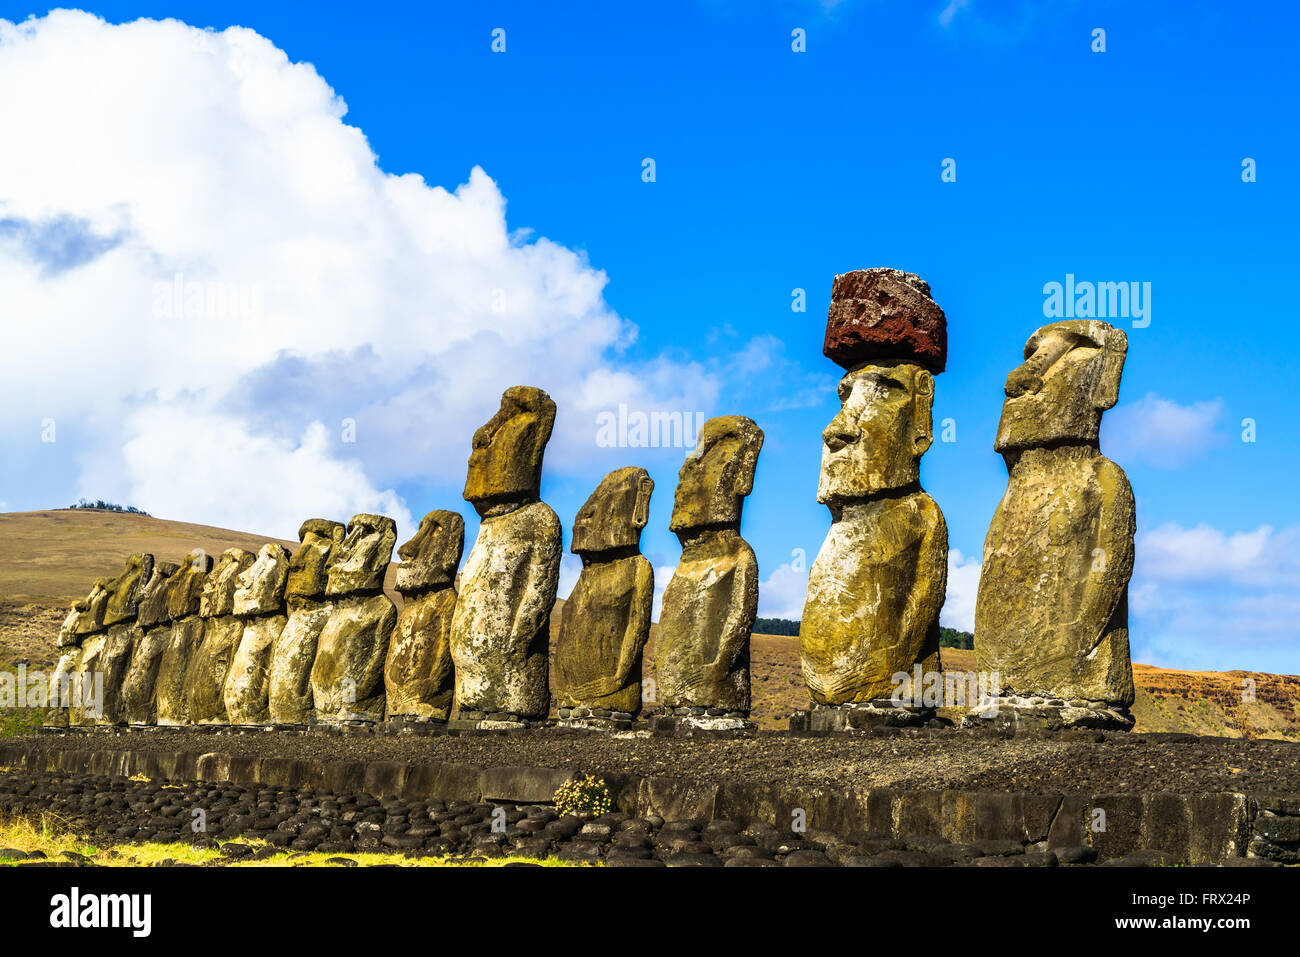 Standing Moai at Ahu Tongariki on Easter Island, Chile - Stock Image